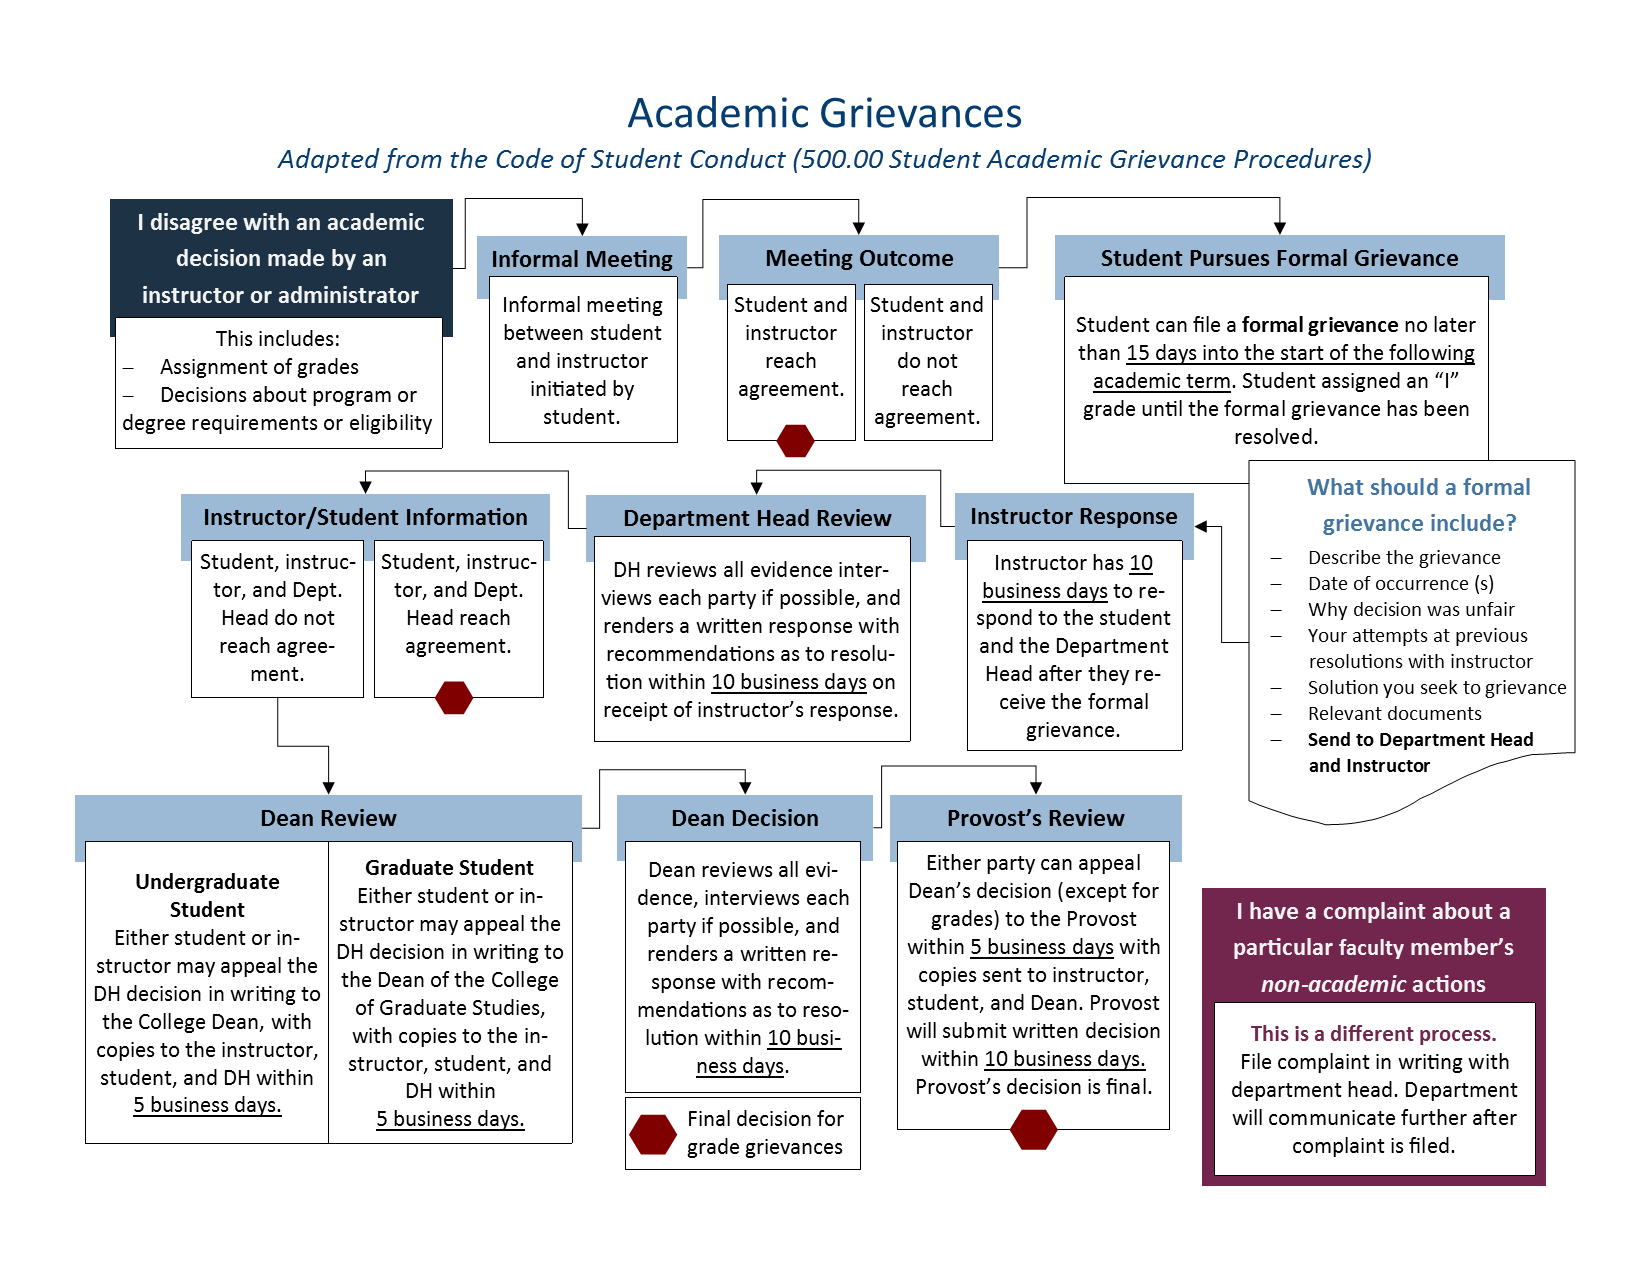 academic and non academic flow chart of procedures explained in words below image